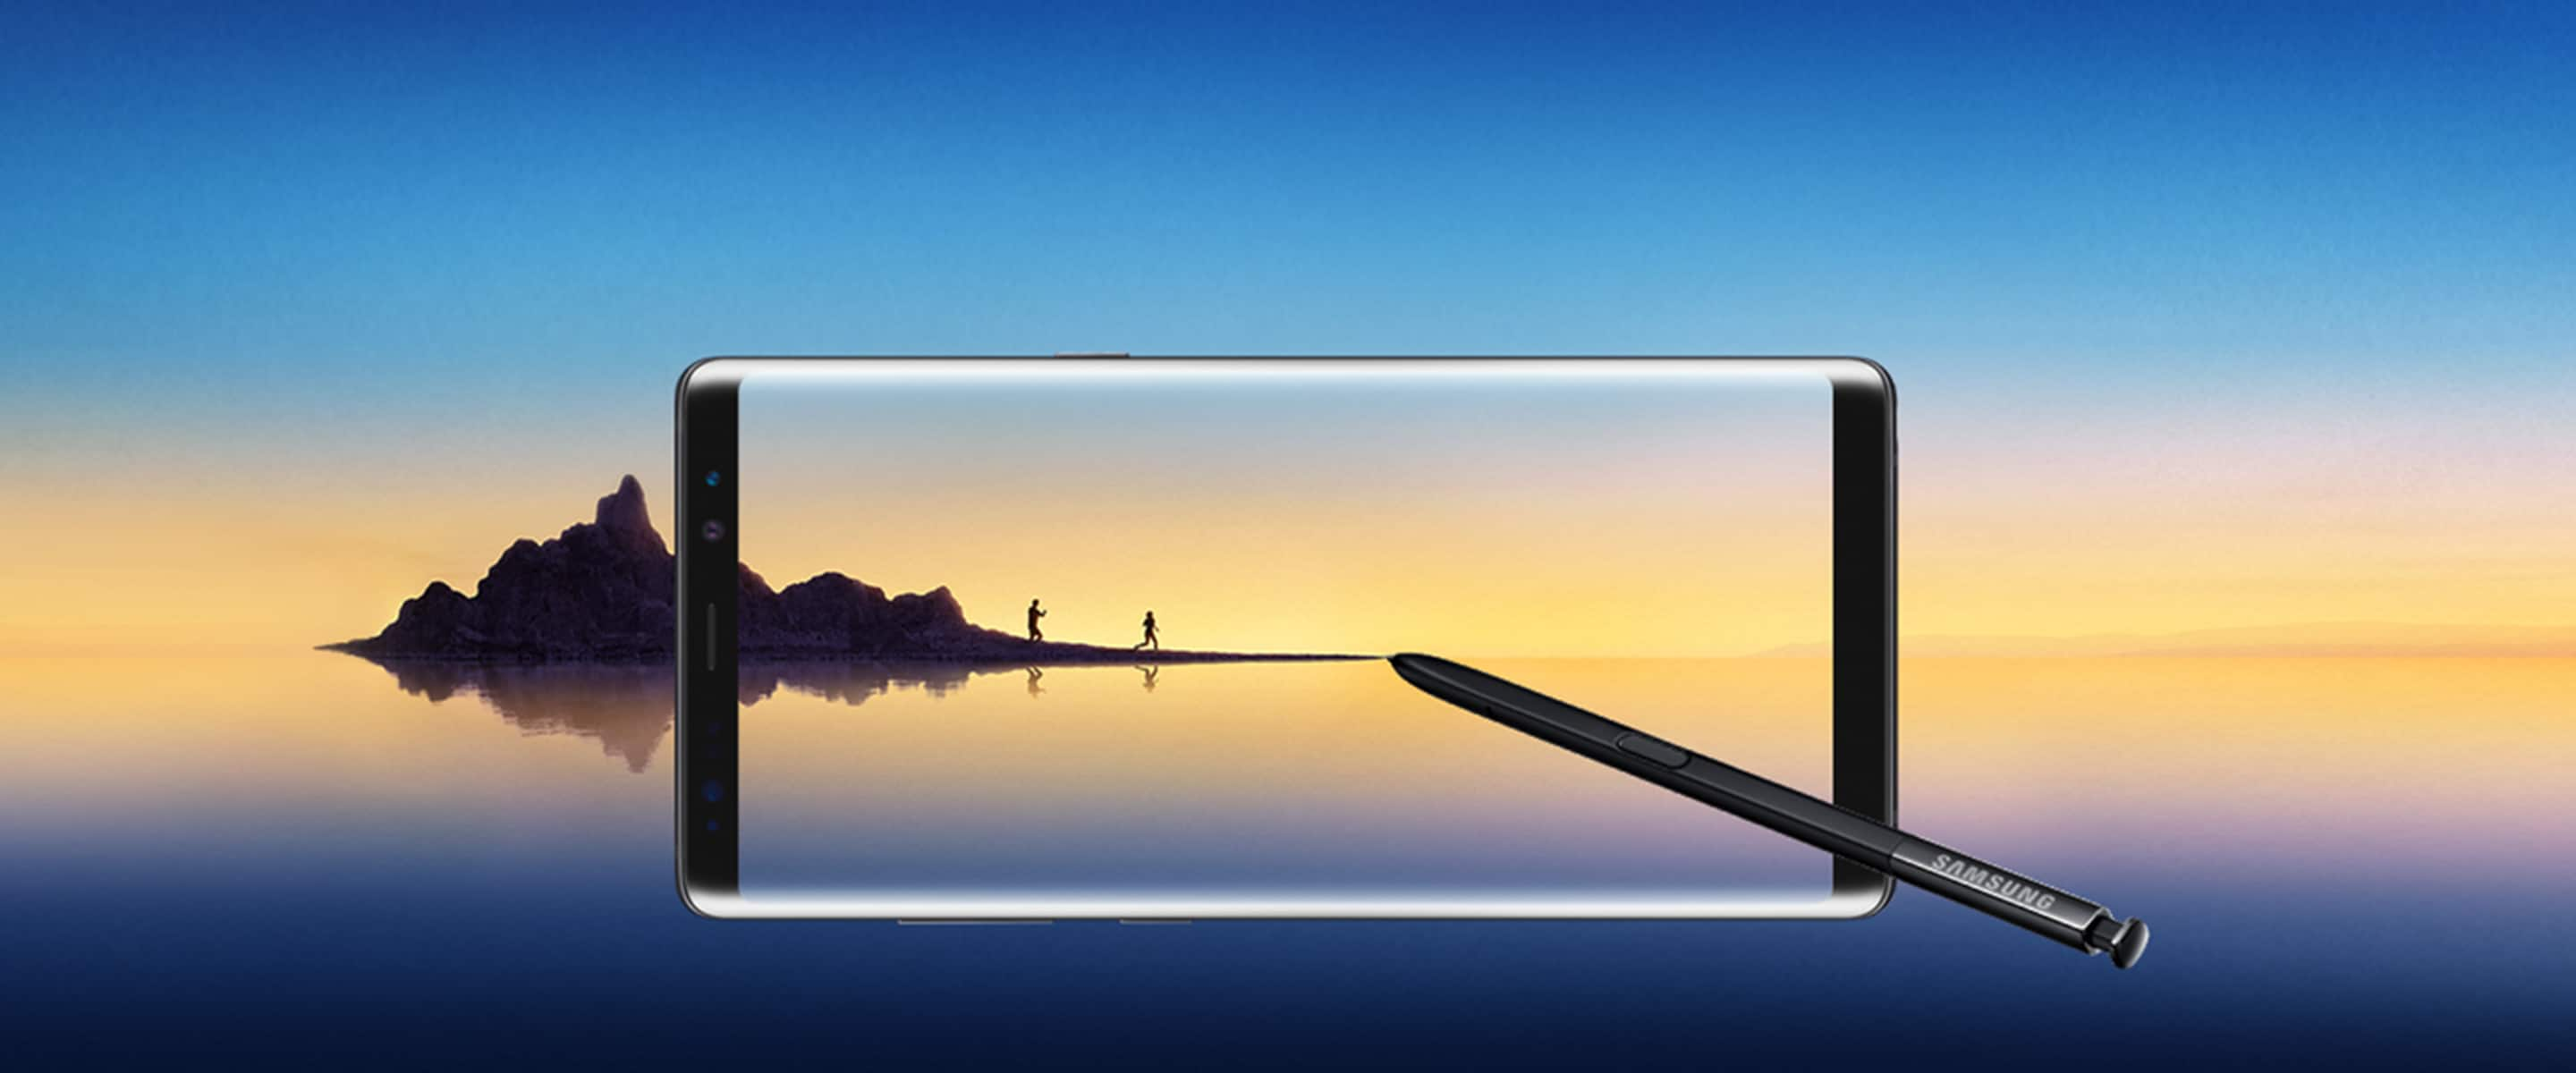 Samsung Galaxy Note8 - Price, Specs & Reviews